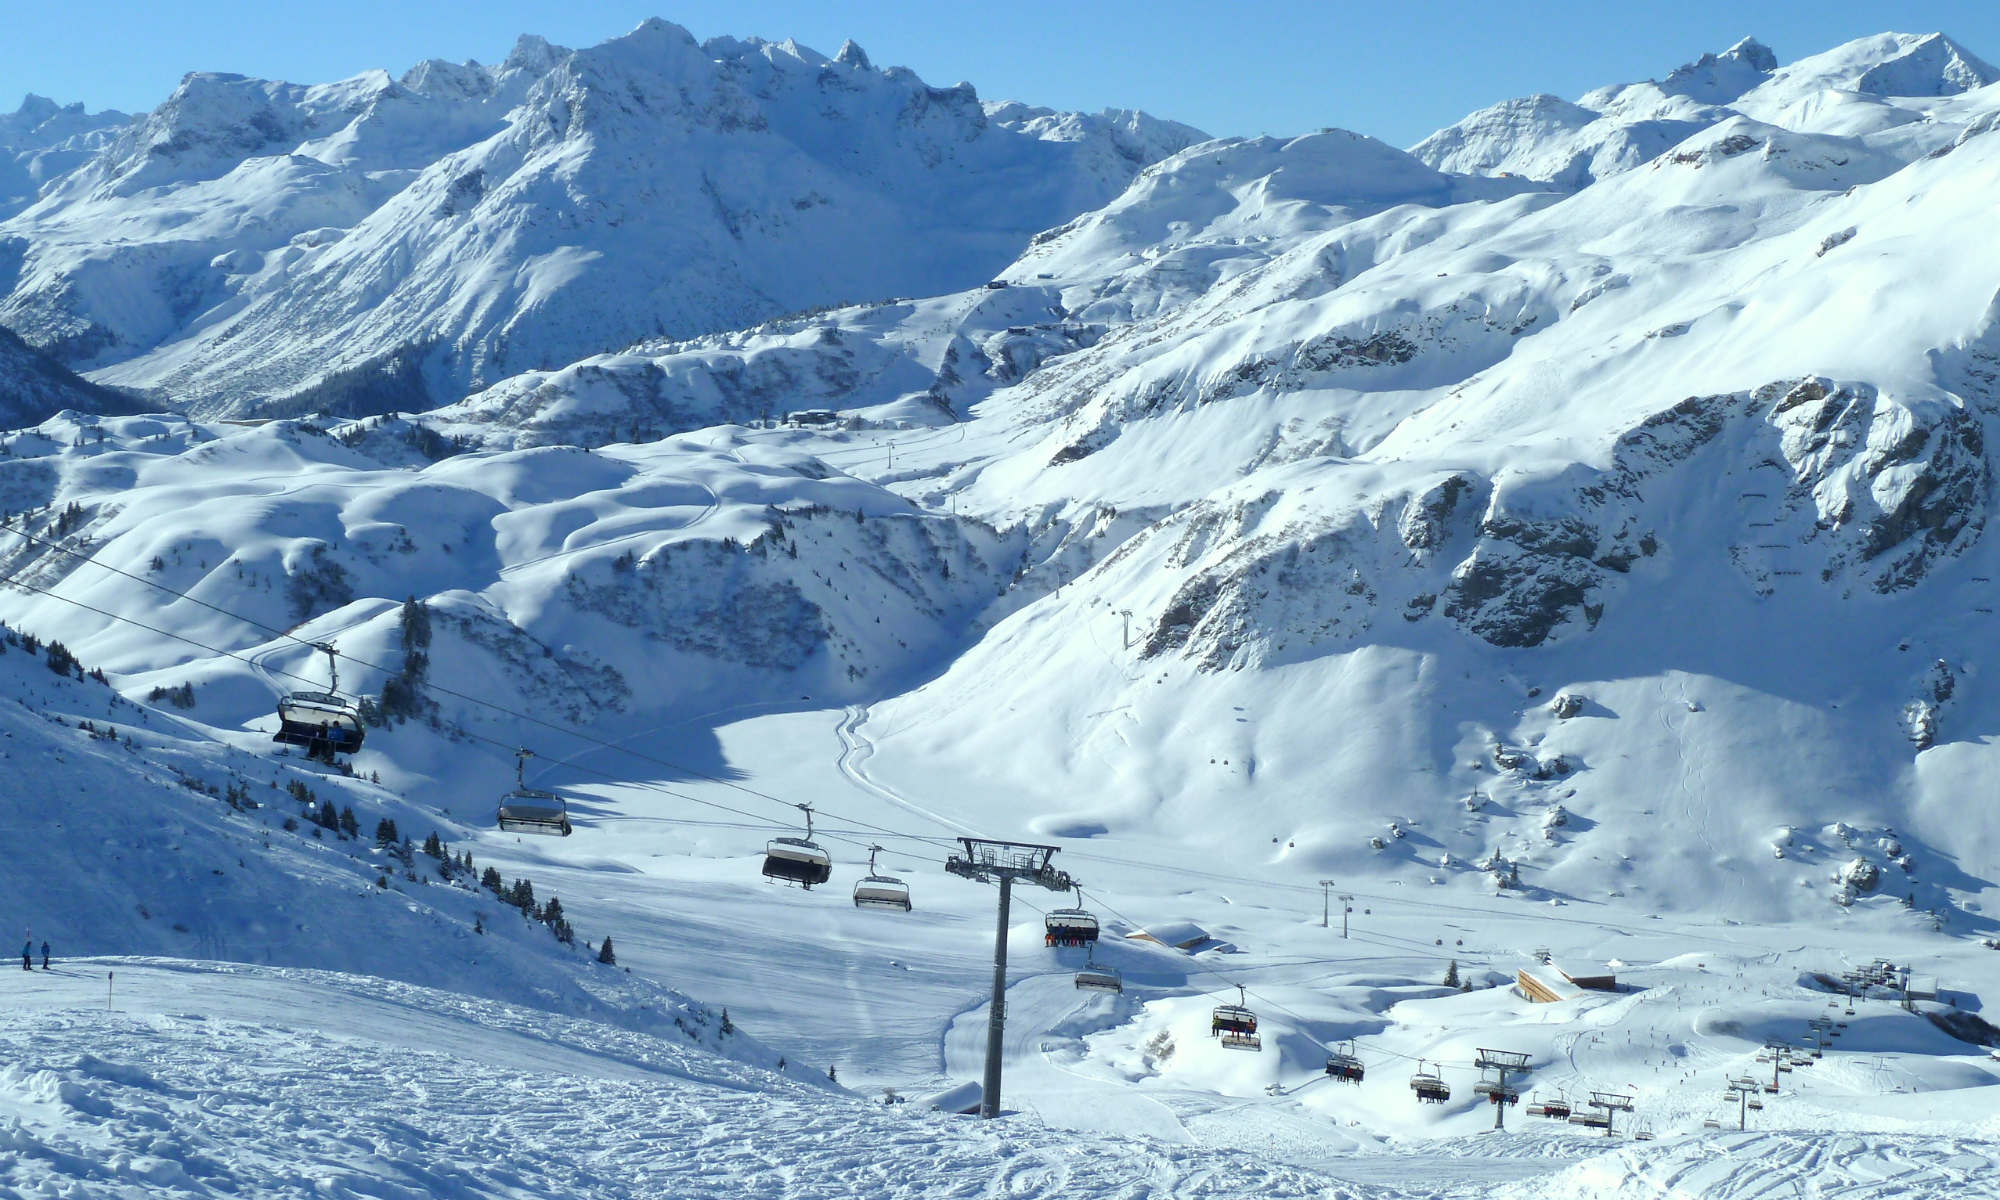 Panoramic view of the mountains and pistes in St Anton am Arlberg.